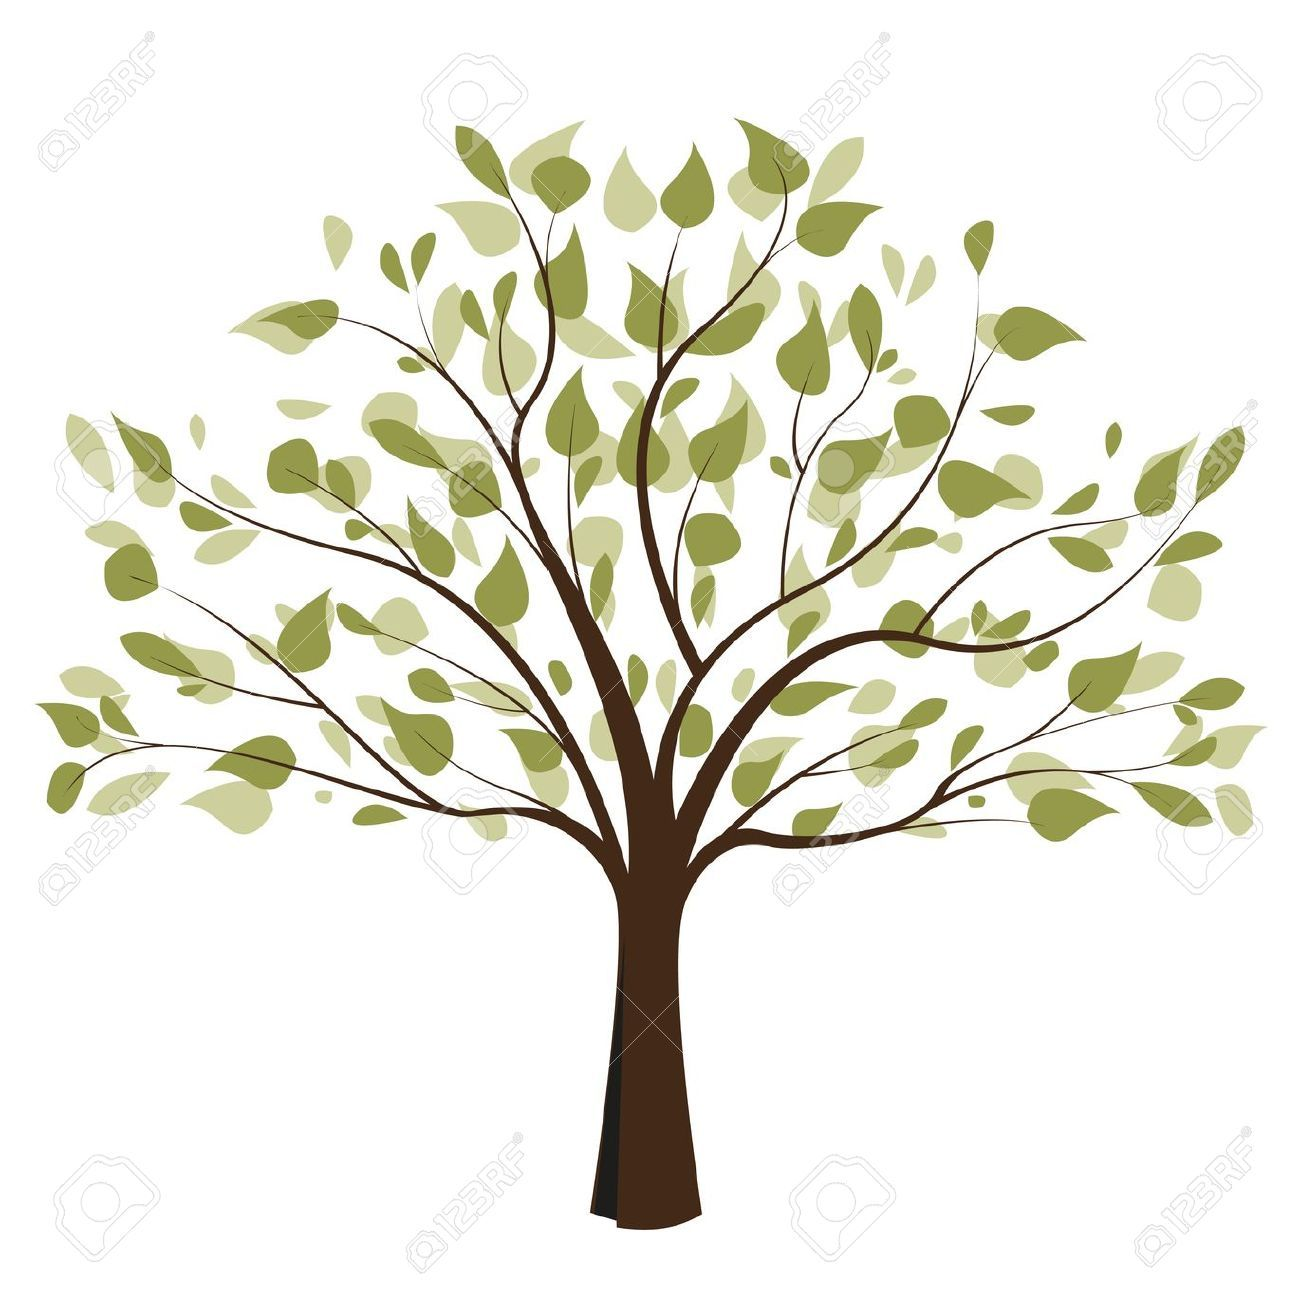 tree of life black and white clipart google search tree rh pinterest com tree of life clipart black and white tree of life clipart free